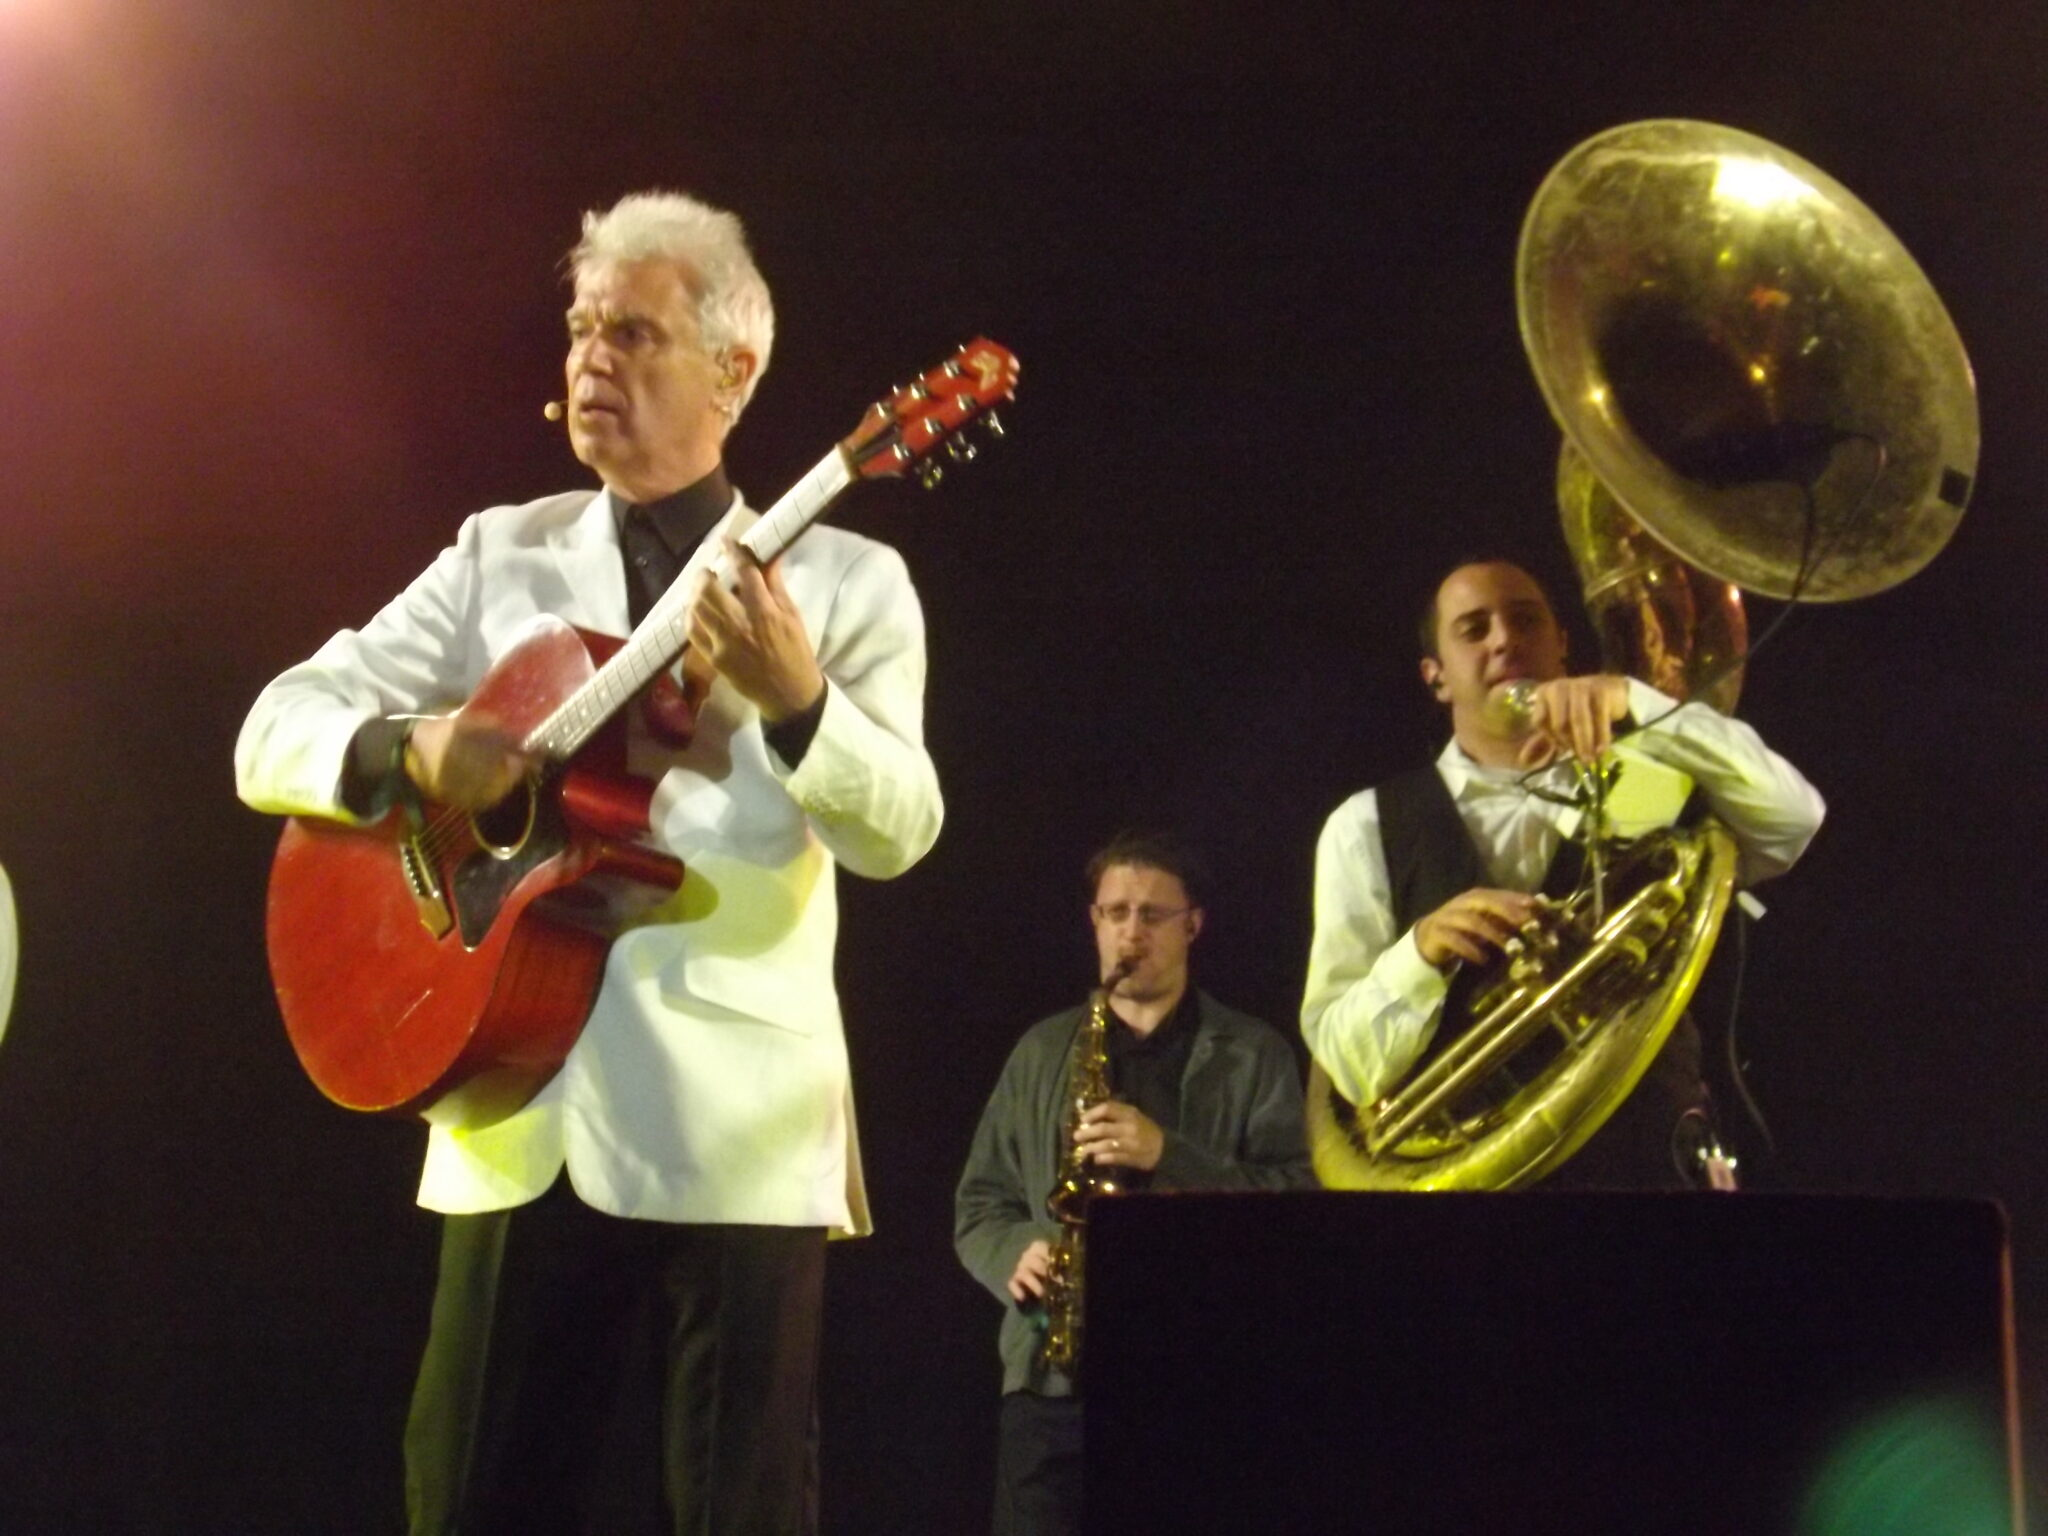 David Byrne sings on stage